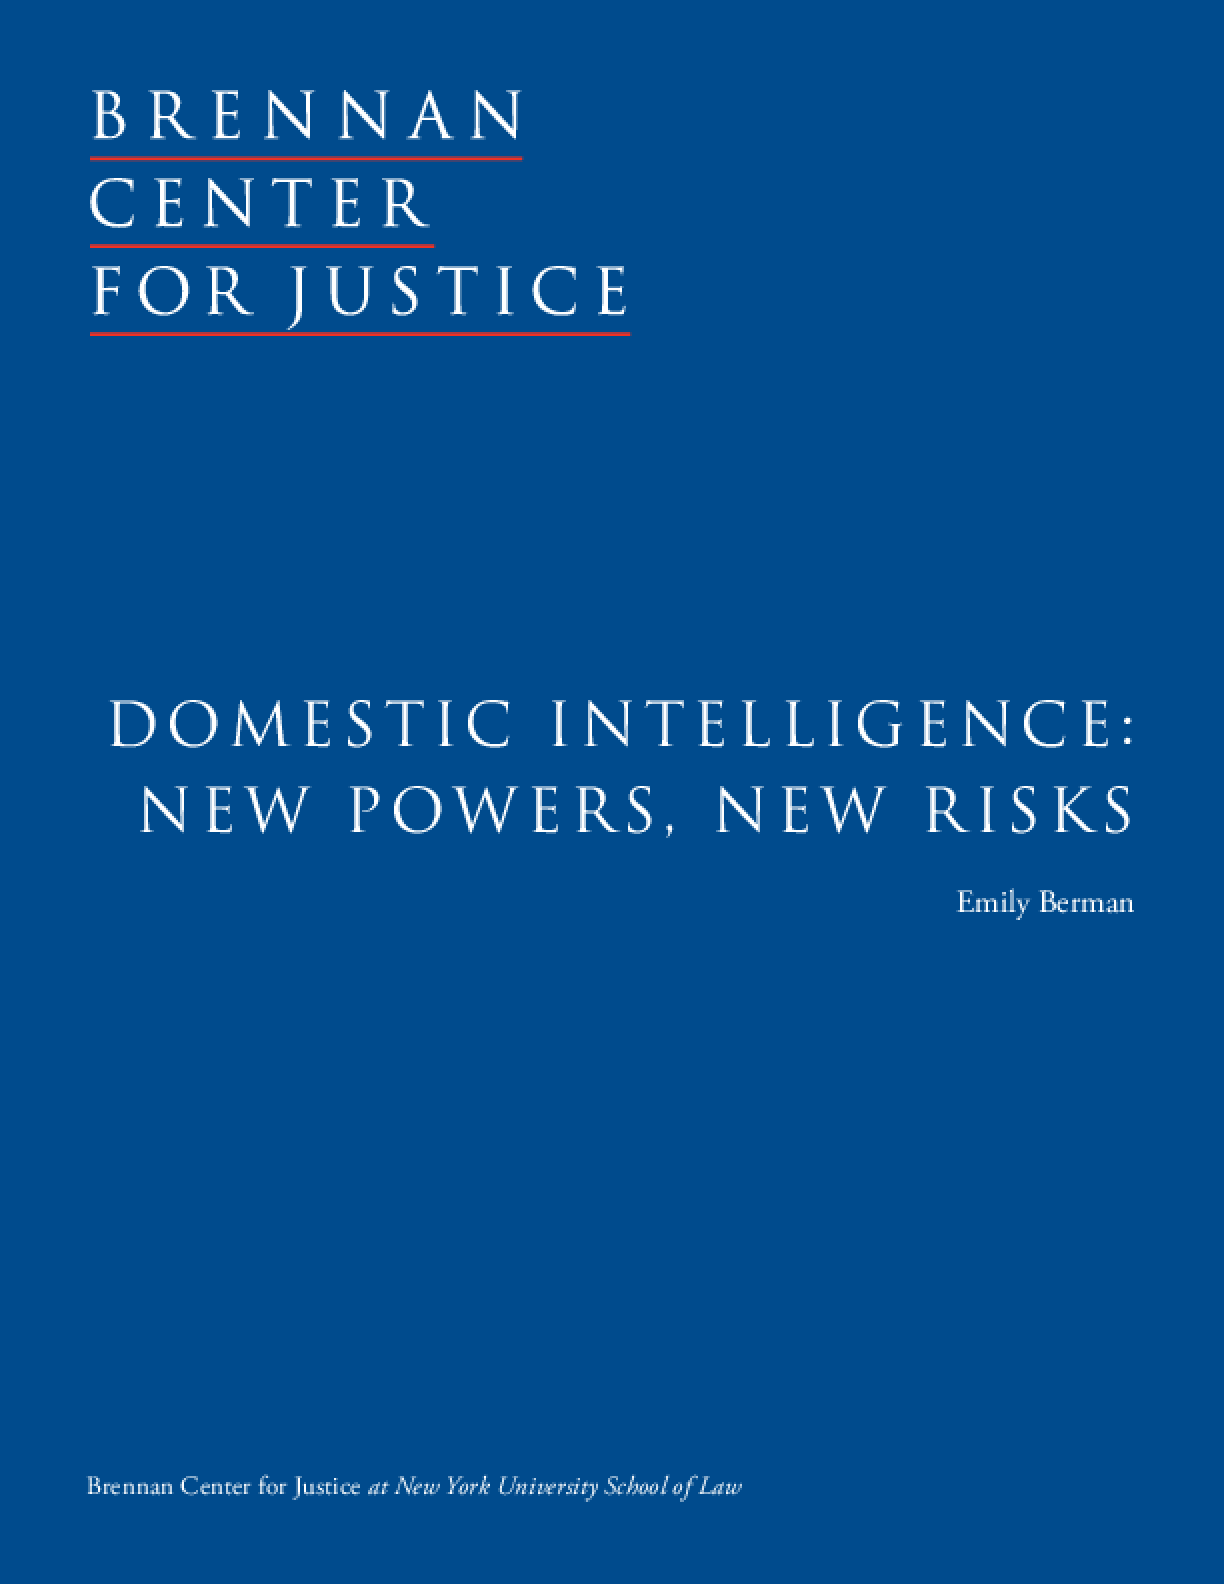 Domestic Intelligence: New Powers, New Risks